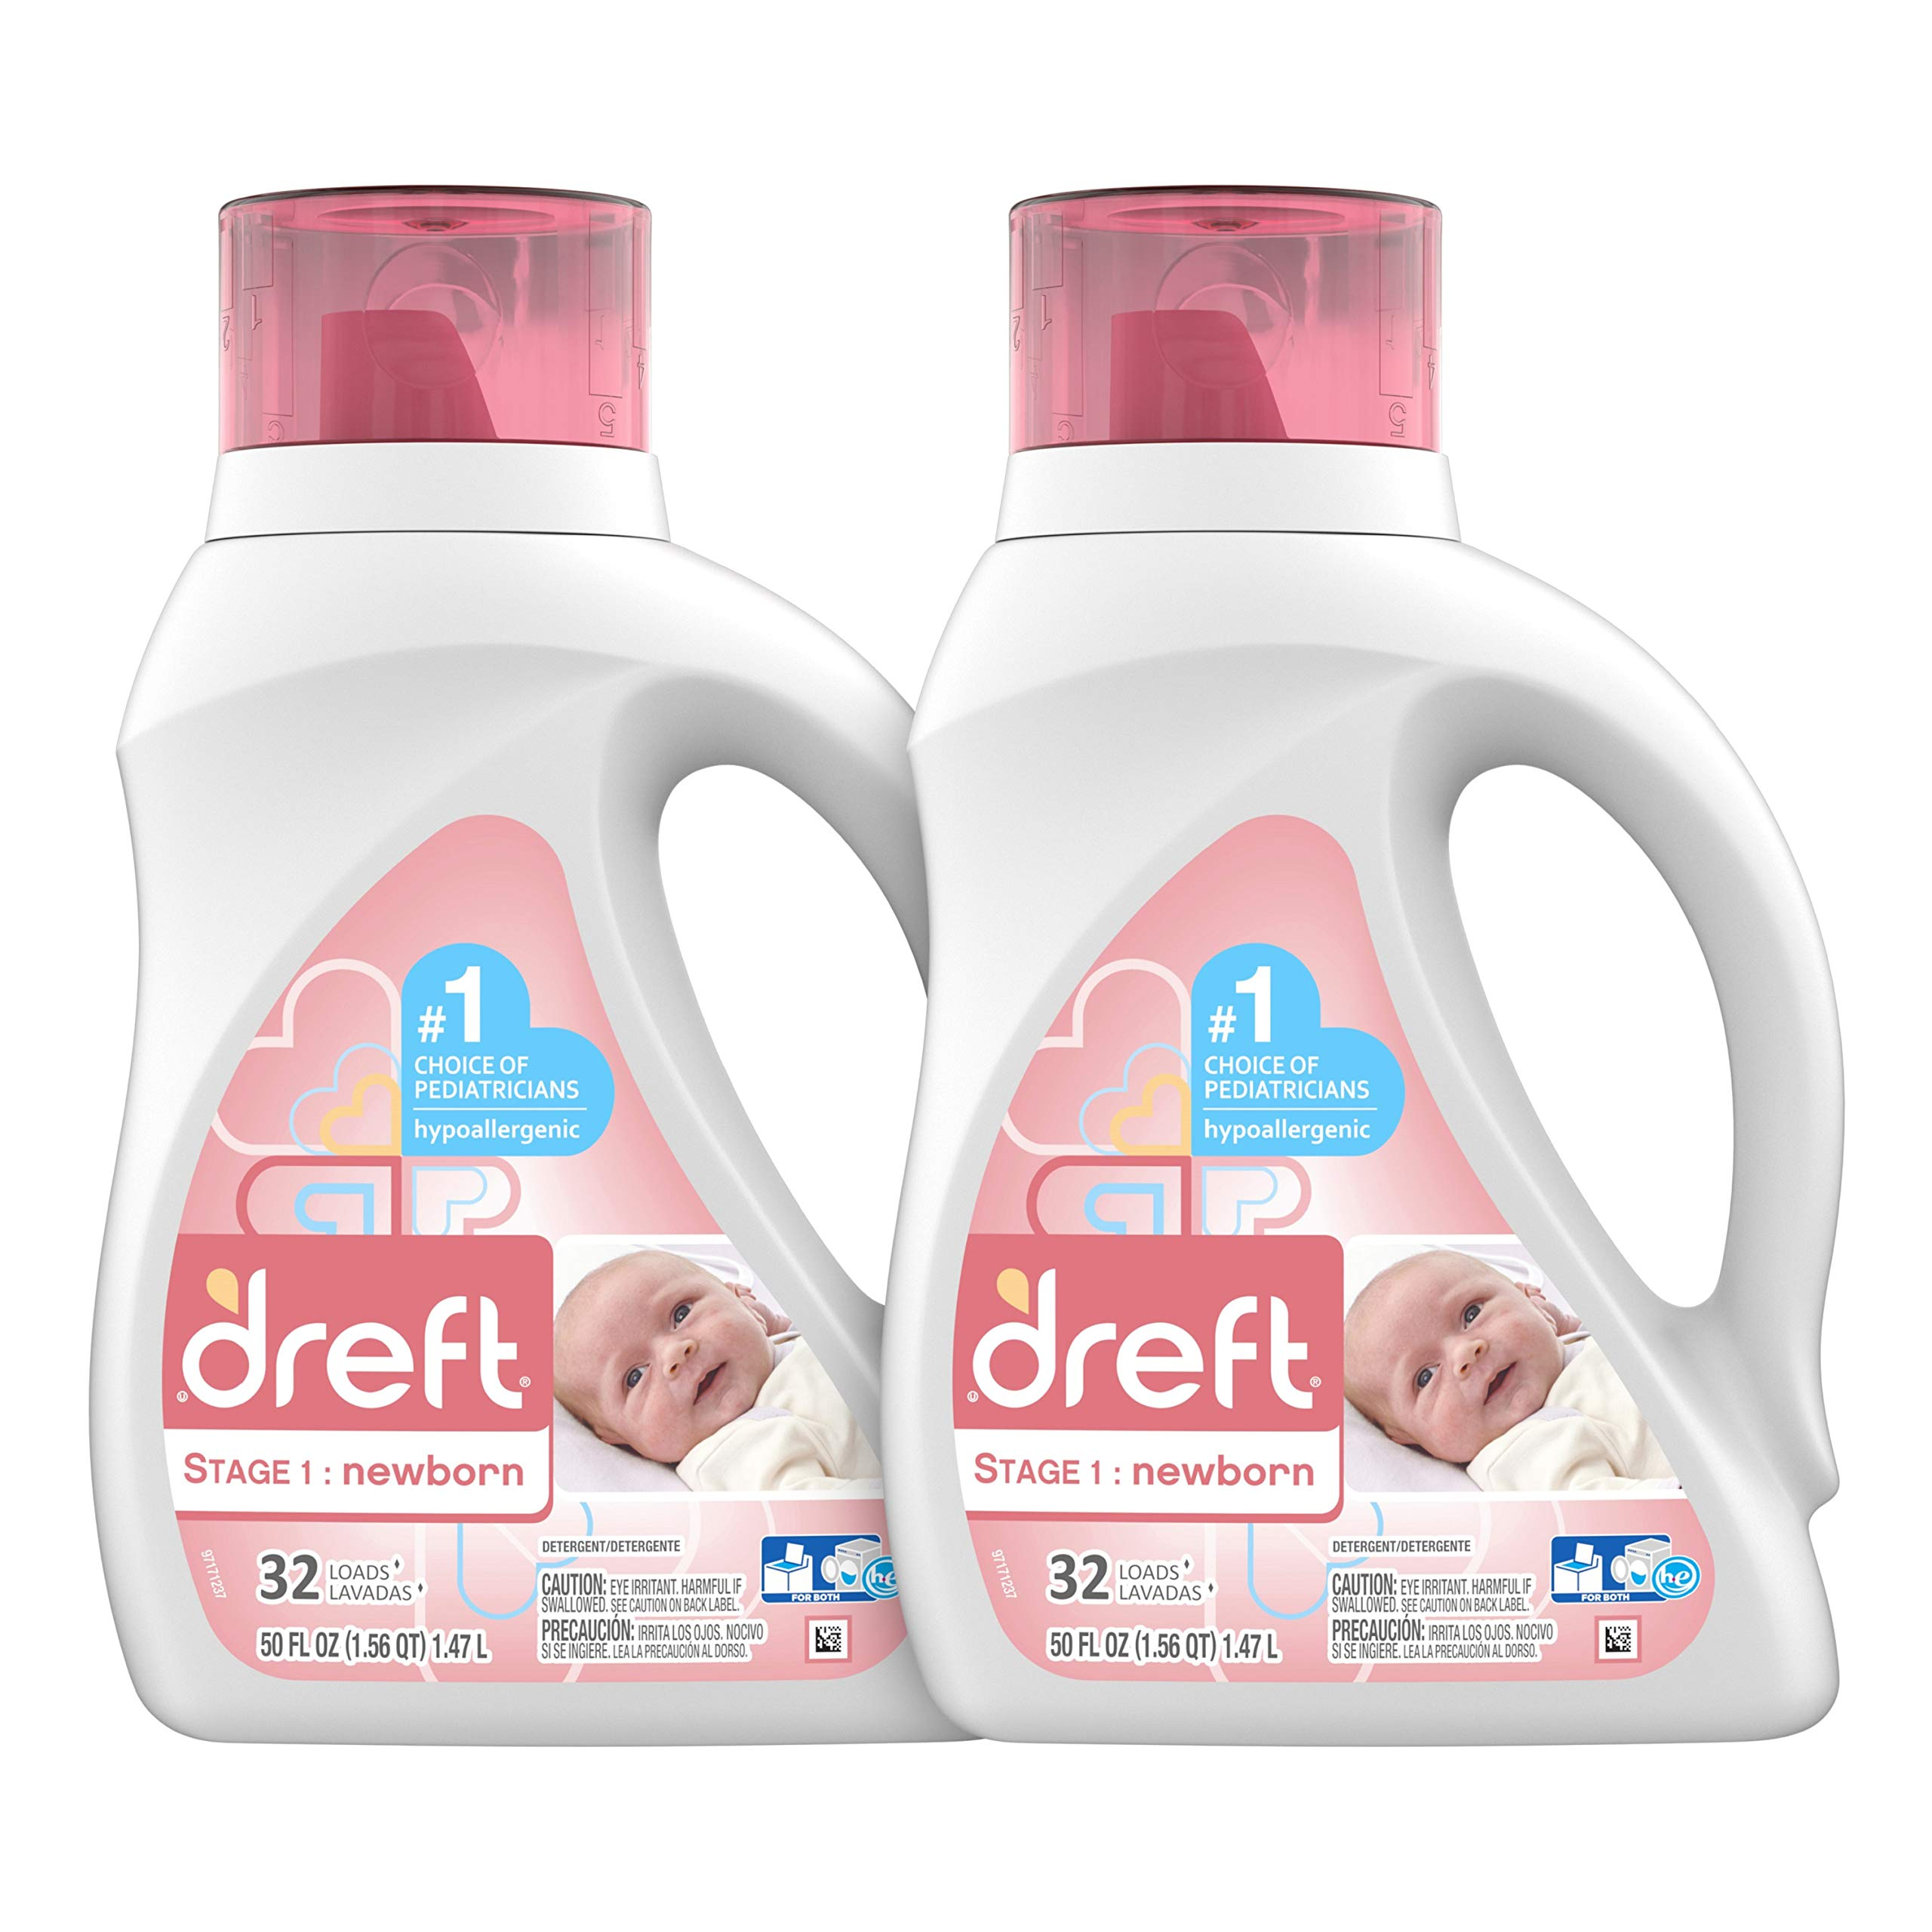 Dreft Stage 1: Newborn Hypoallergenic Liquid Baby Laundry Detergent (HE), Natural for Baby, Newborn, or Infant, 50 Ounce (32 Loads), 2 Count (Packaging May Vary) by Dreft